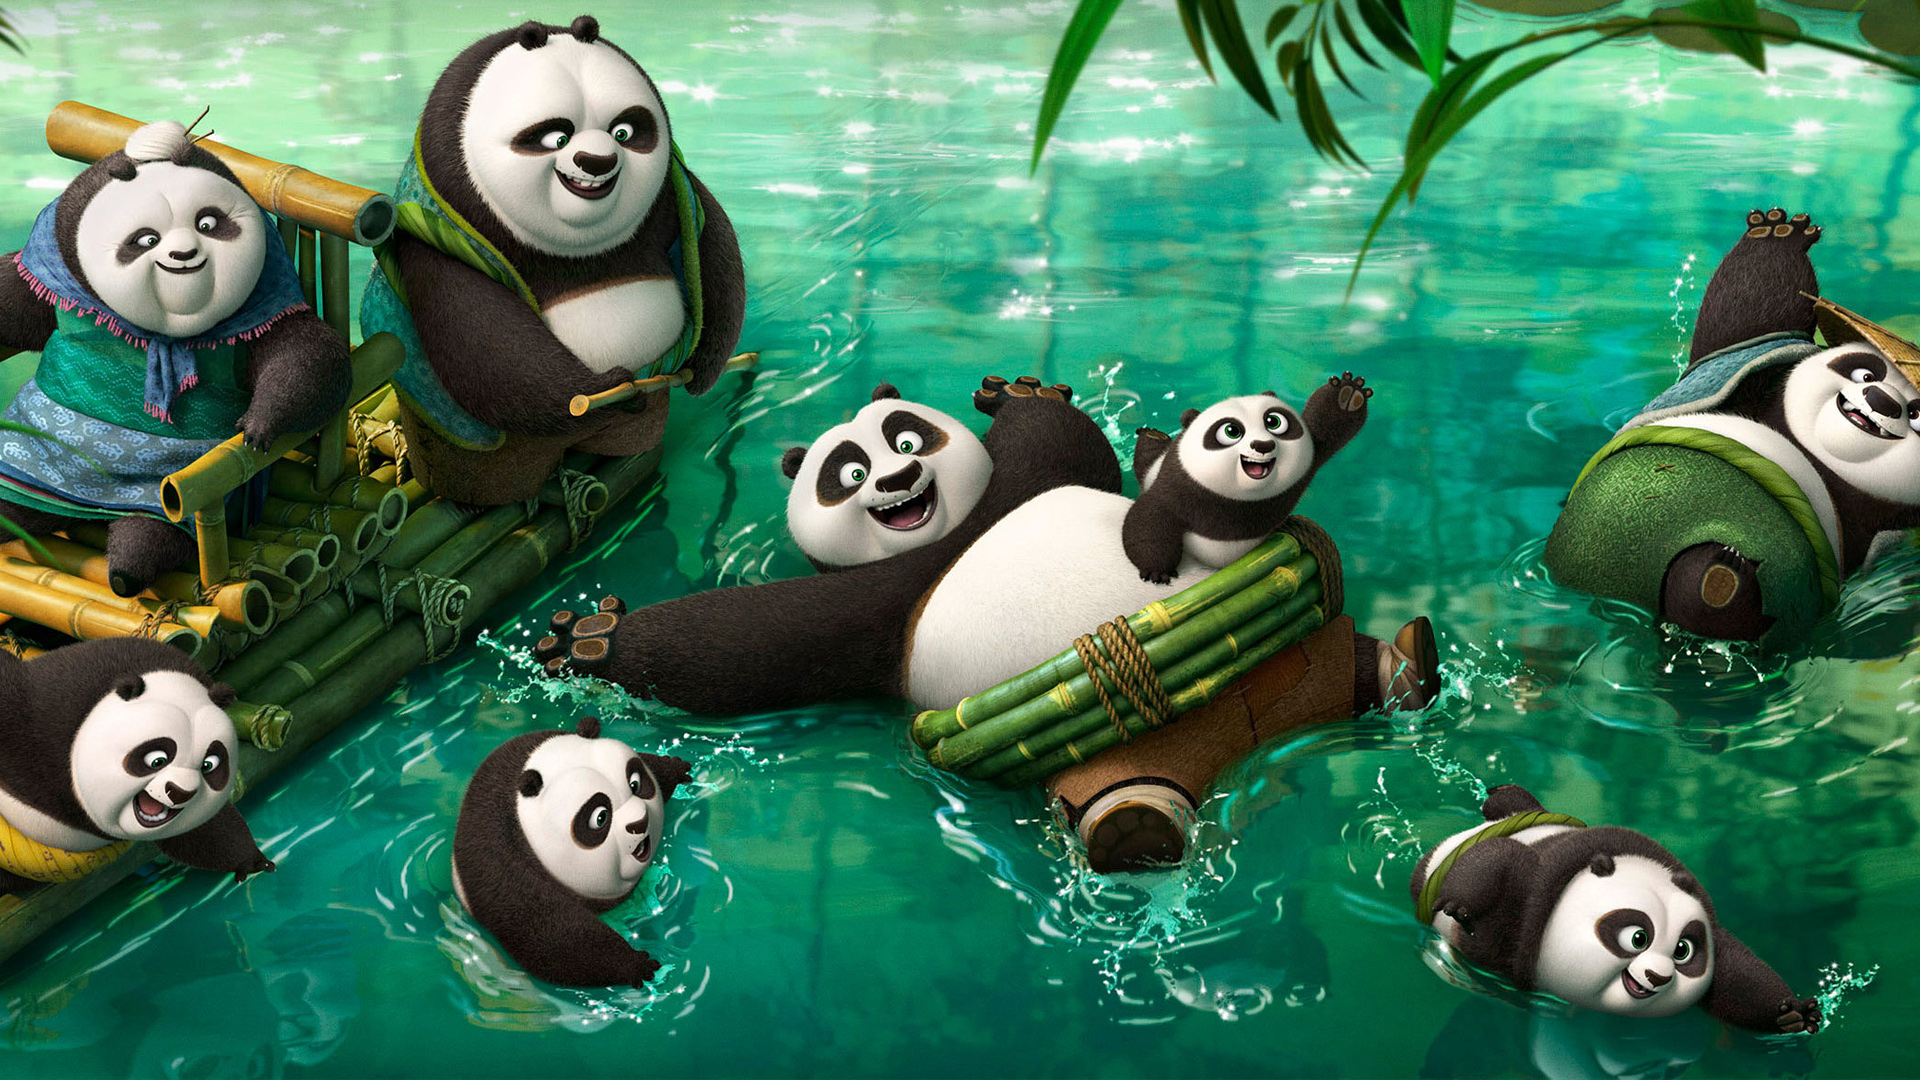 kung fu panda 3 full hd wallpaper and background image | 1920x1080